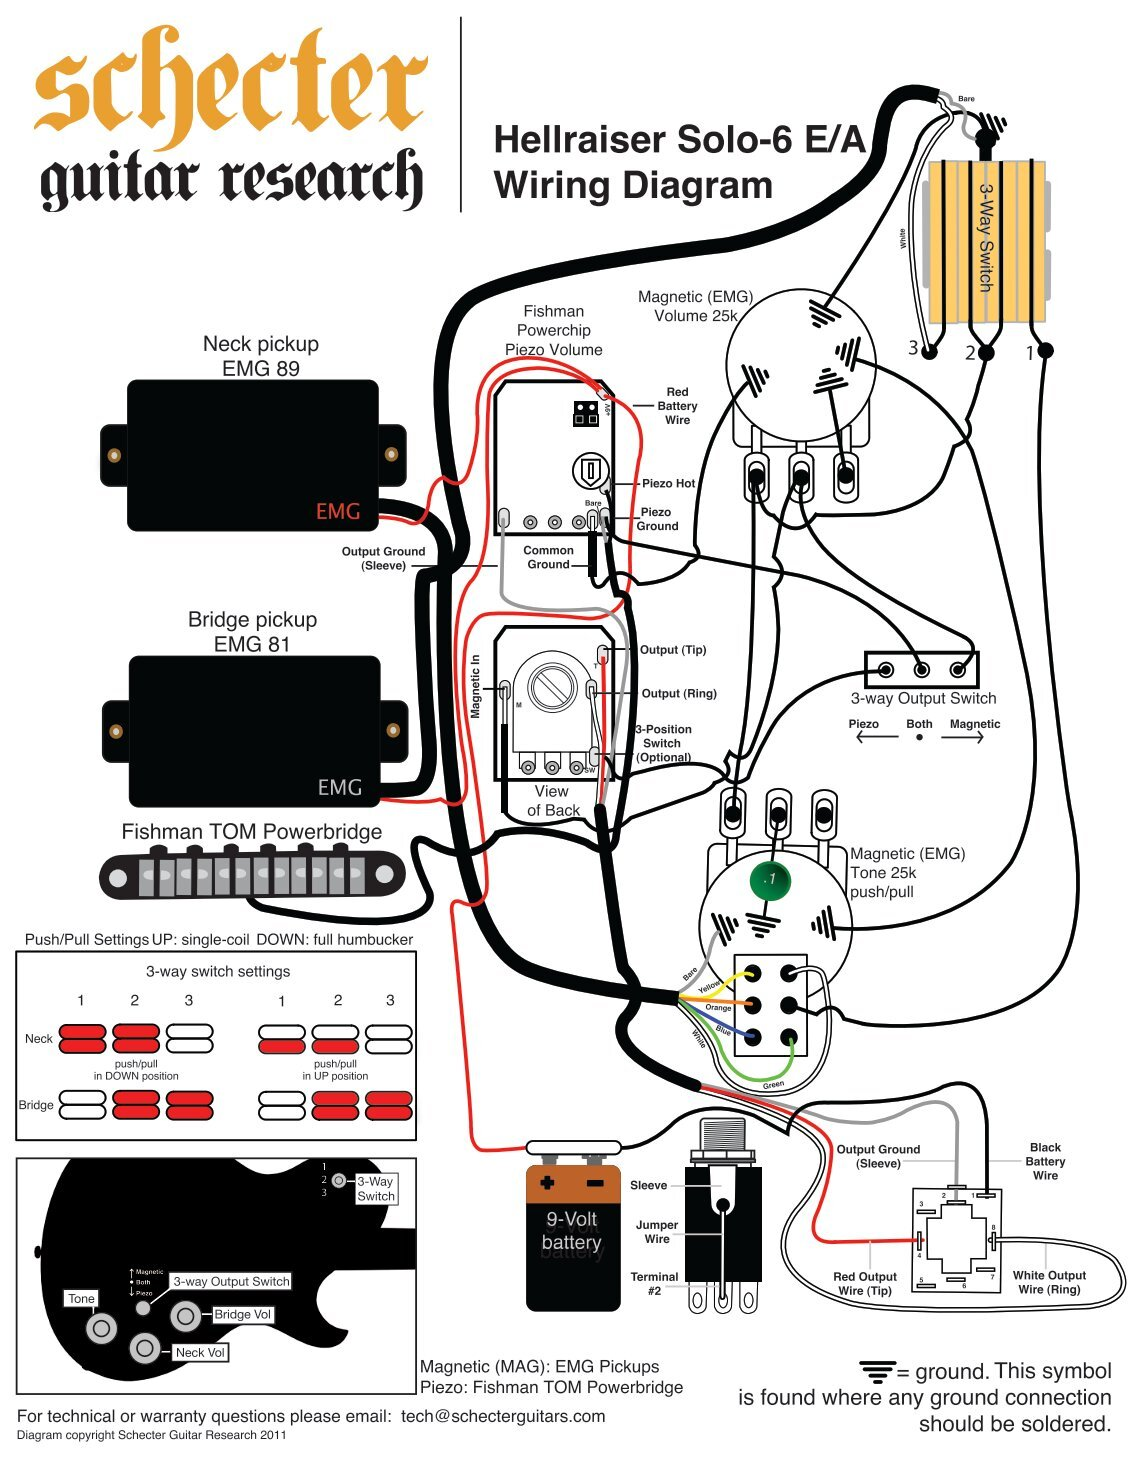 hellraiser solo 6 wiring diagram schecter guitars?quality\\\\\\\\\\\\\\\\\\\\\\\\\\\\\\\=85 emg hz wiring diagram color emg hz passive wiring diagram \u2022 205 ufc co EMG Quick Connect Wiring Diagram at gsmx.co